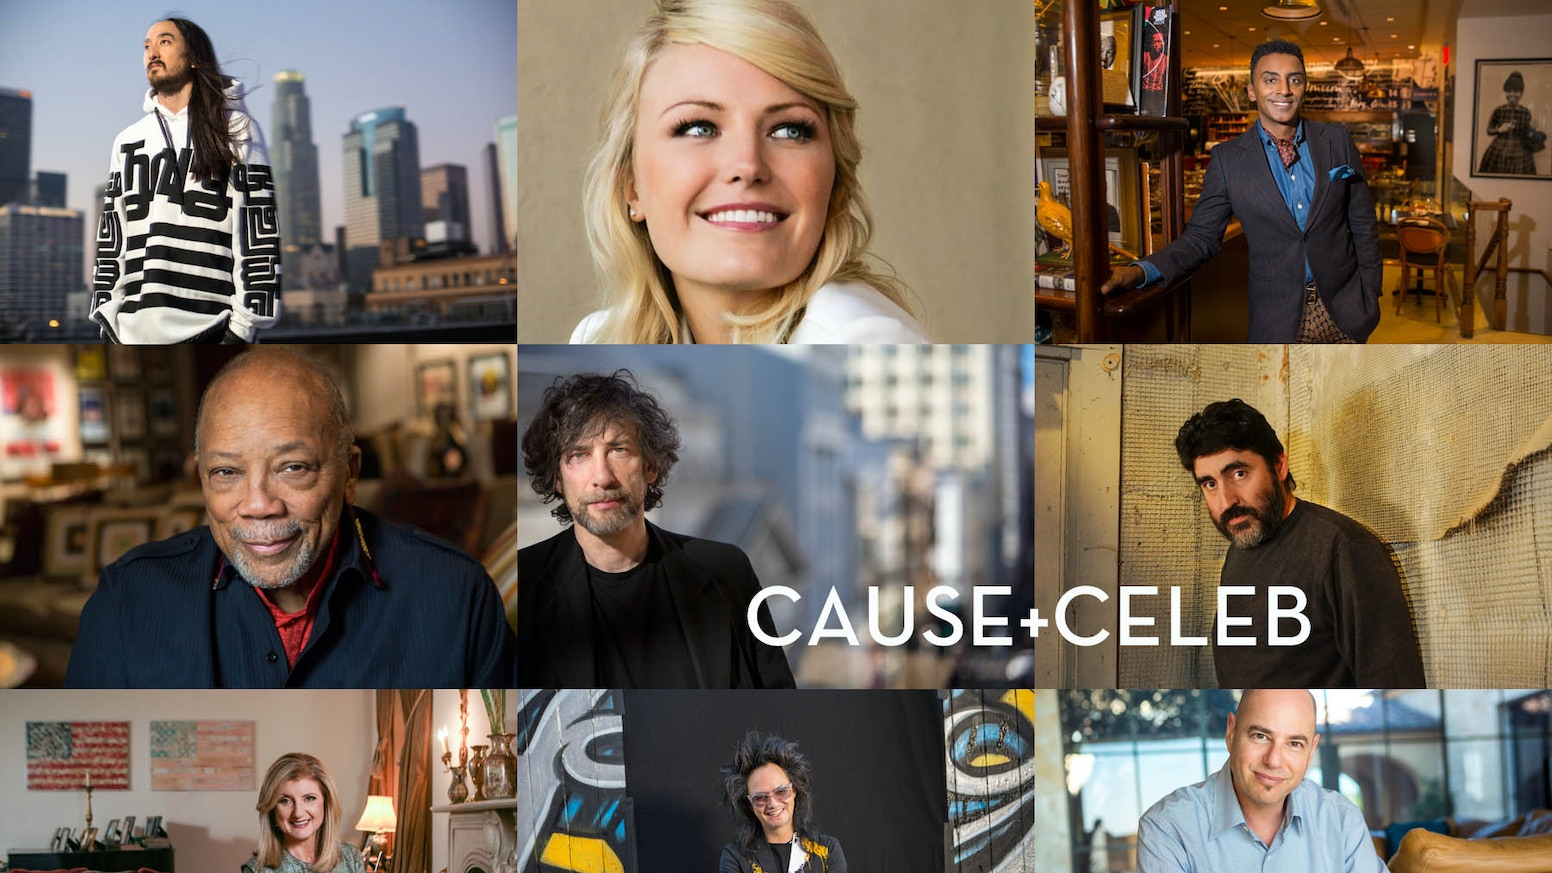 CAUSE + CELEB: 90 Portraits + 40 Causes + 1 Mission - Create Awareness to Create Change